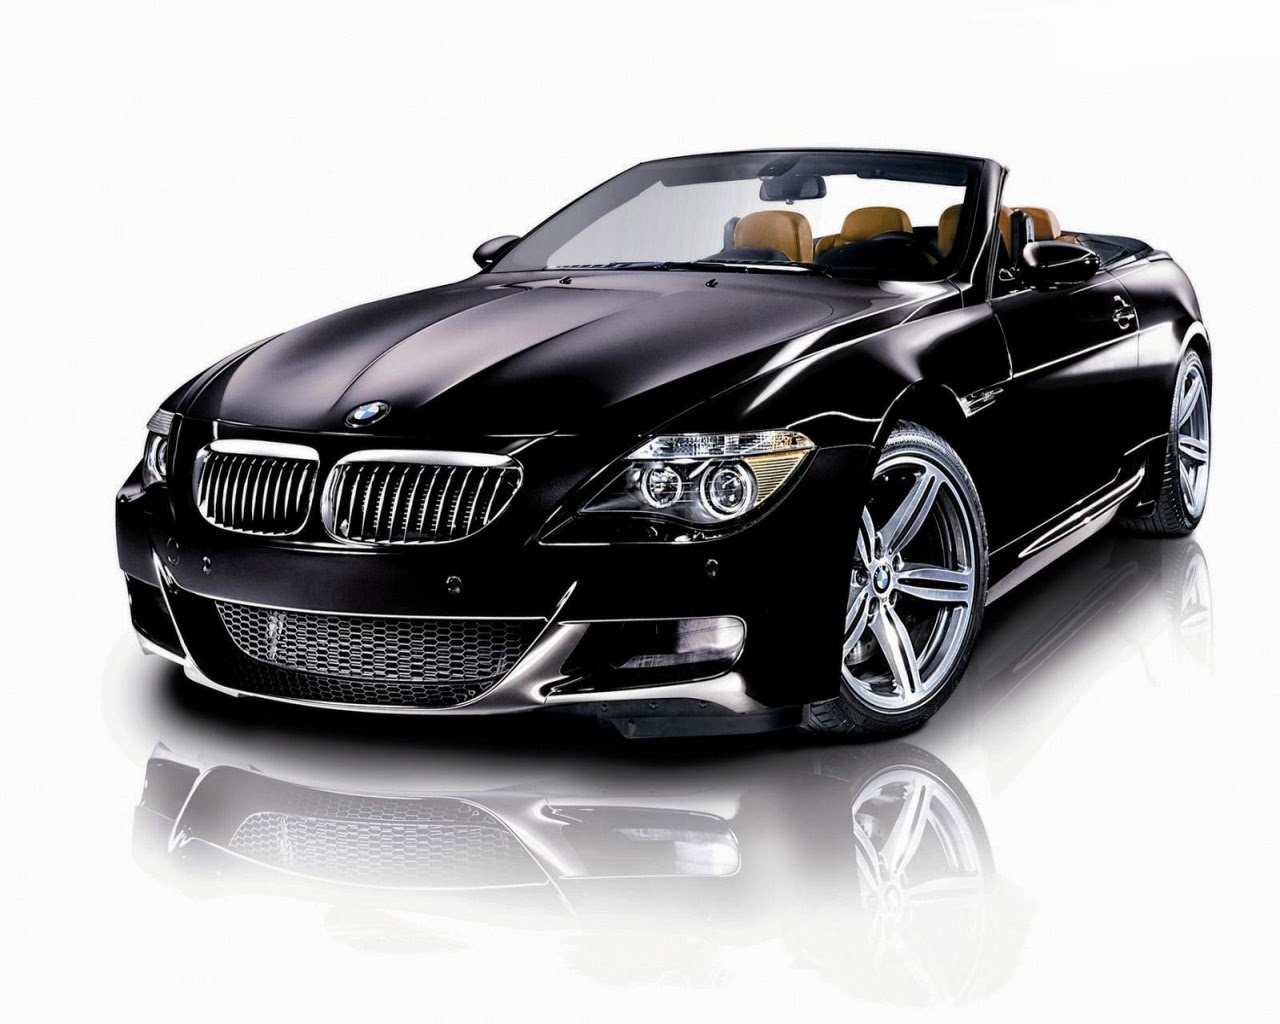 Stylish BMW Black Color Car Wallpaper